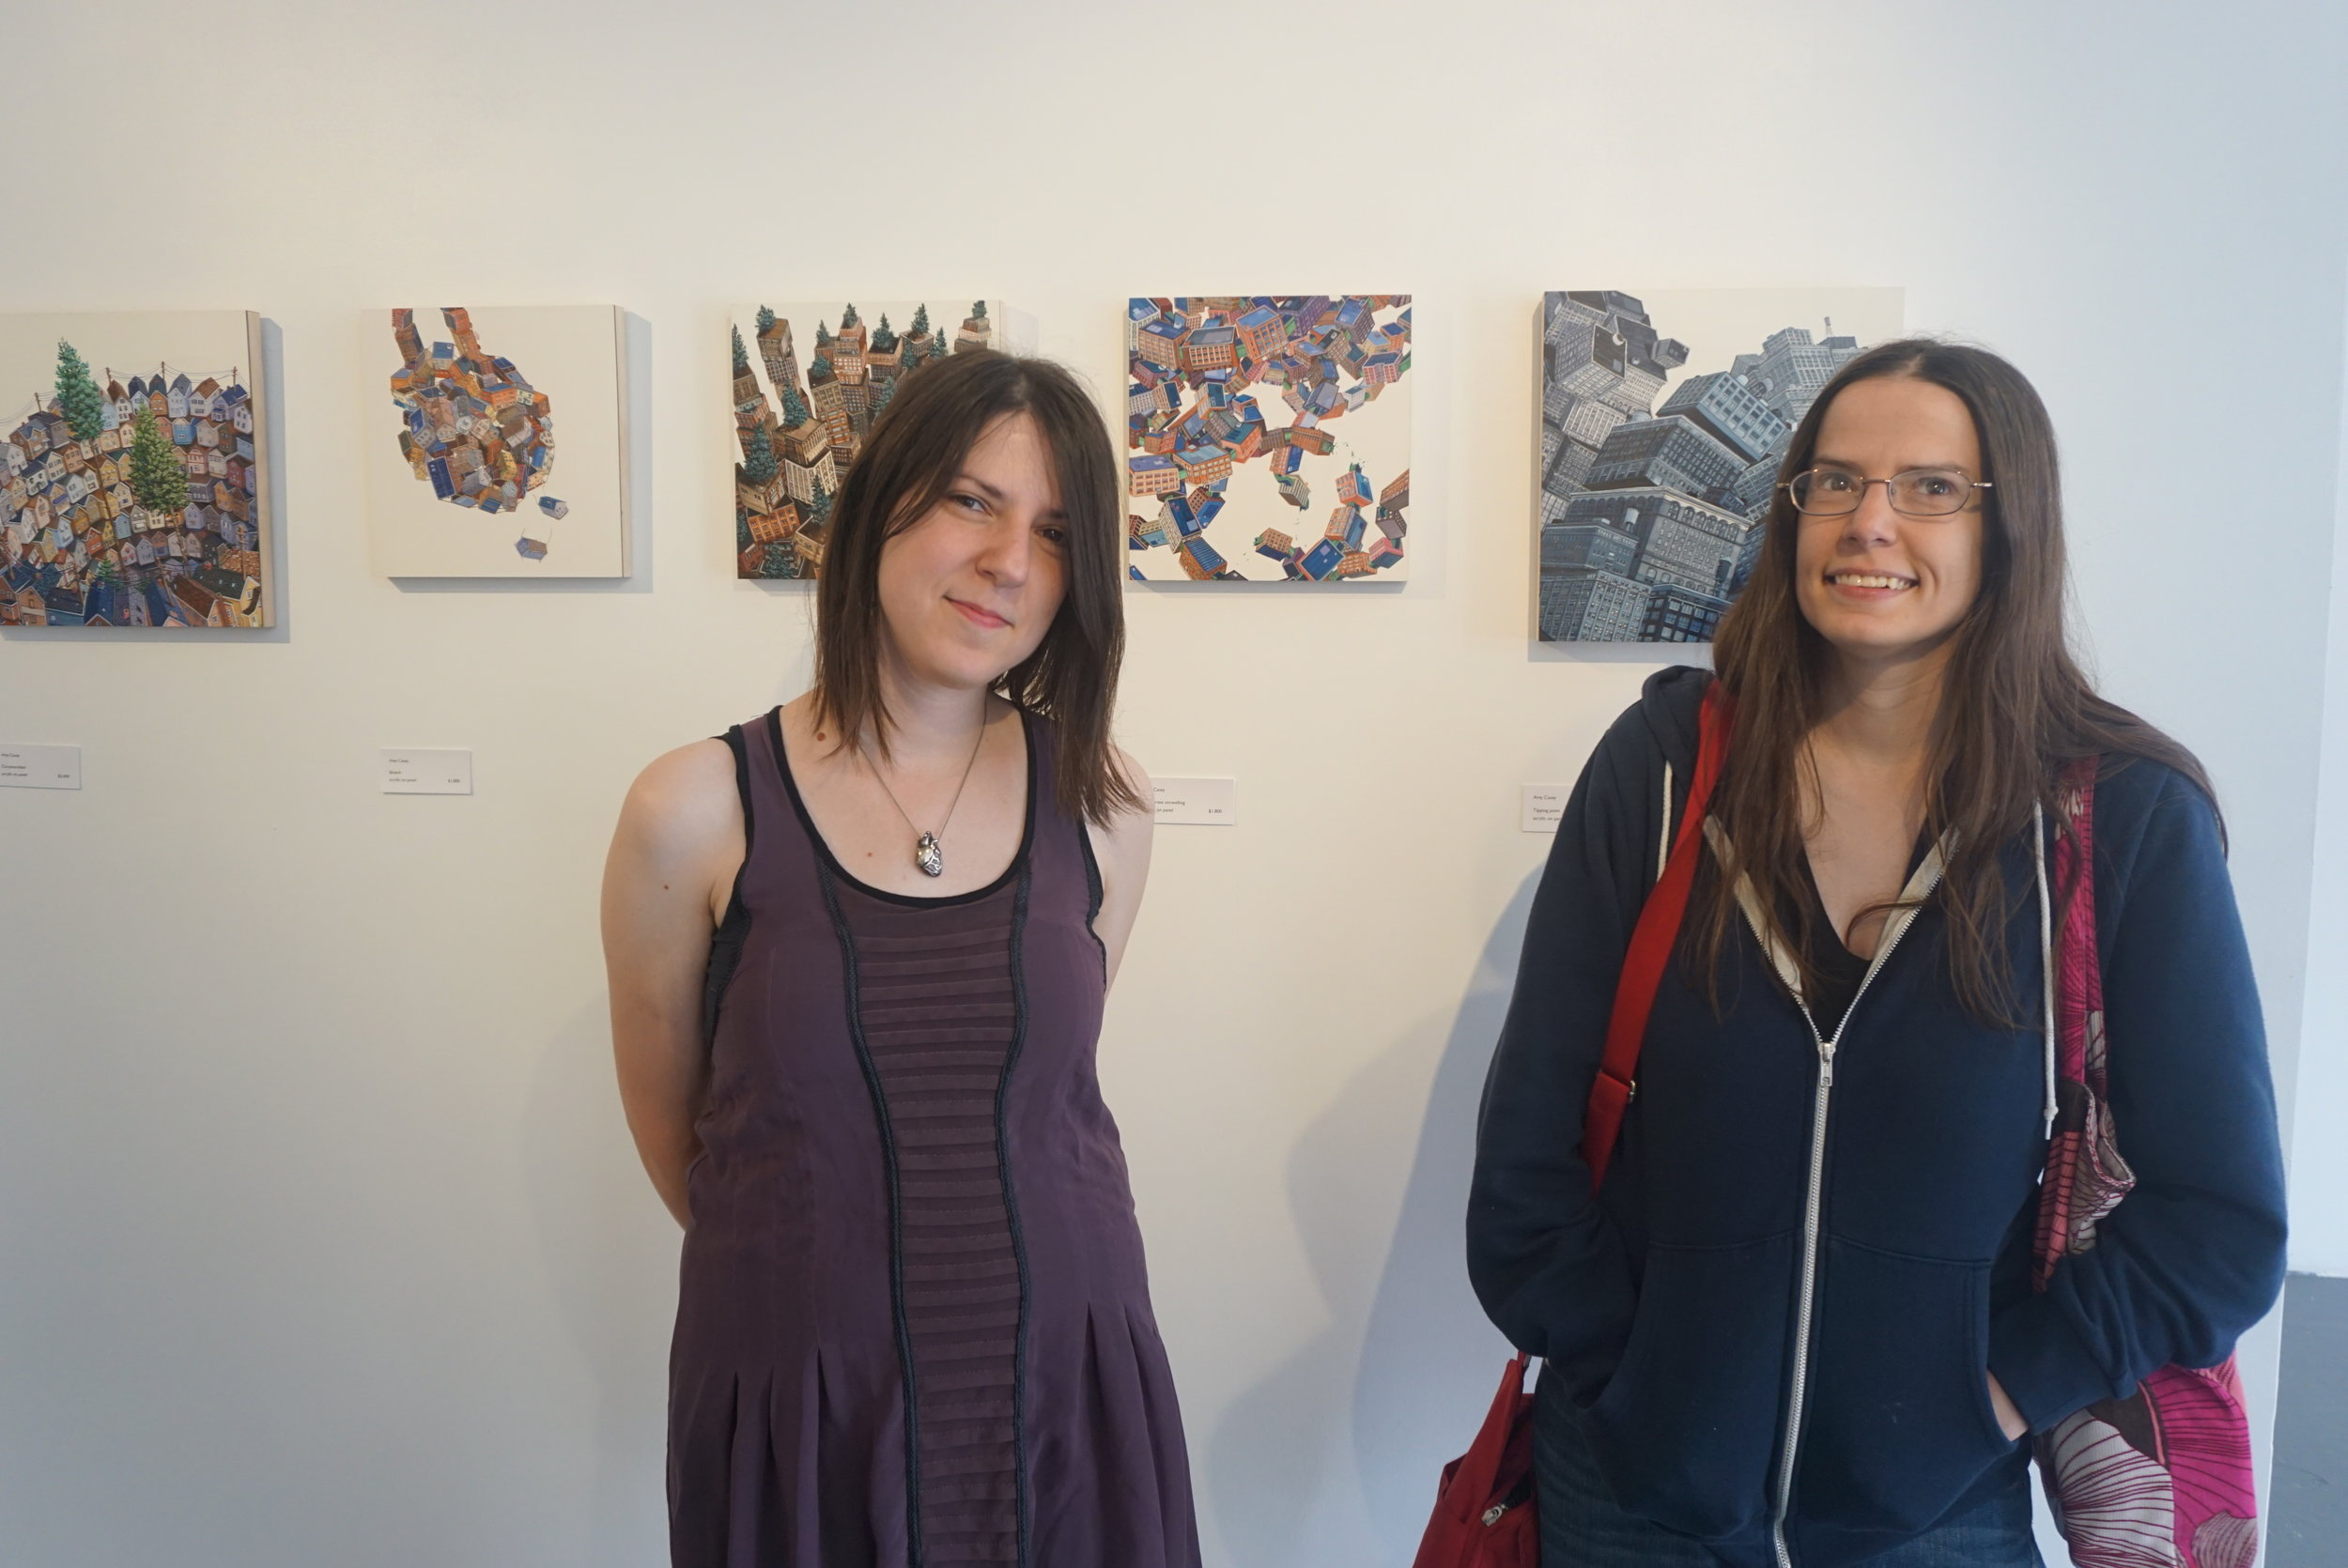 Amy Casey and her sister (right) who flew up from Cleveland, OH for the opening.